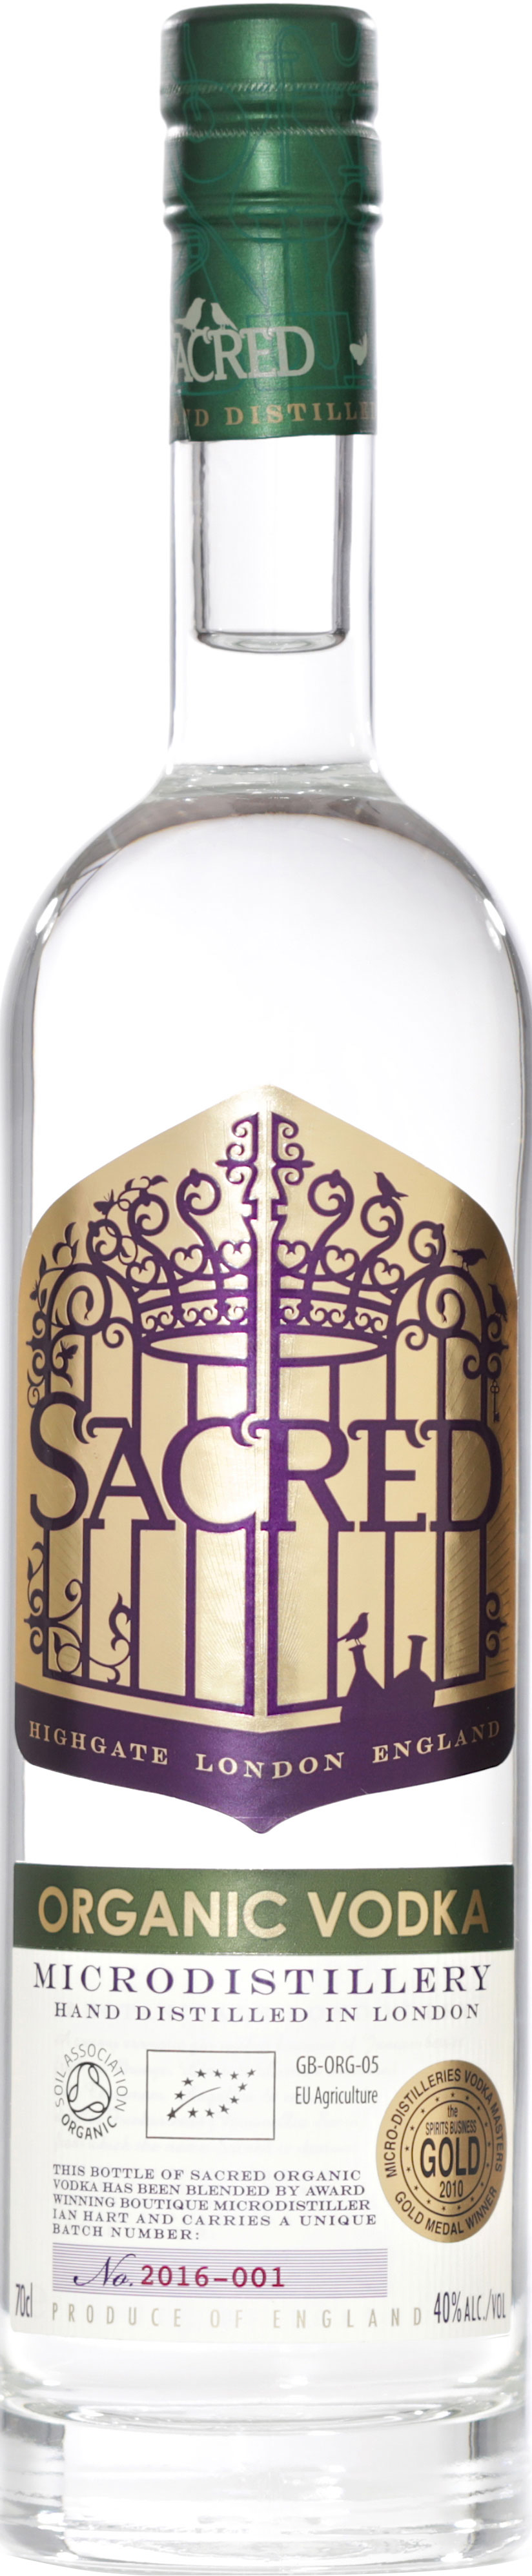 Sacred - Organic Vodka 70cl Bottle